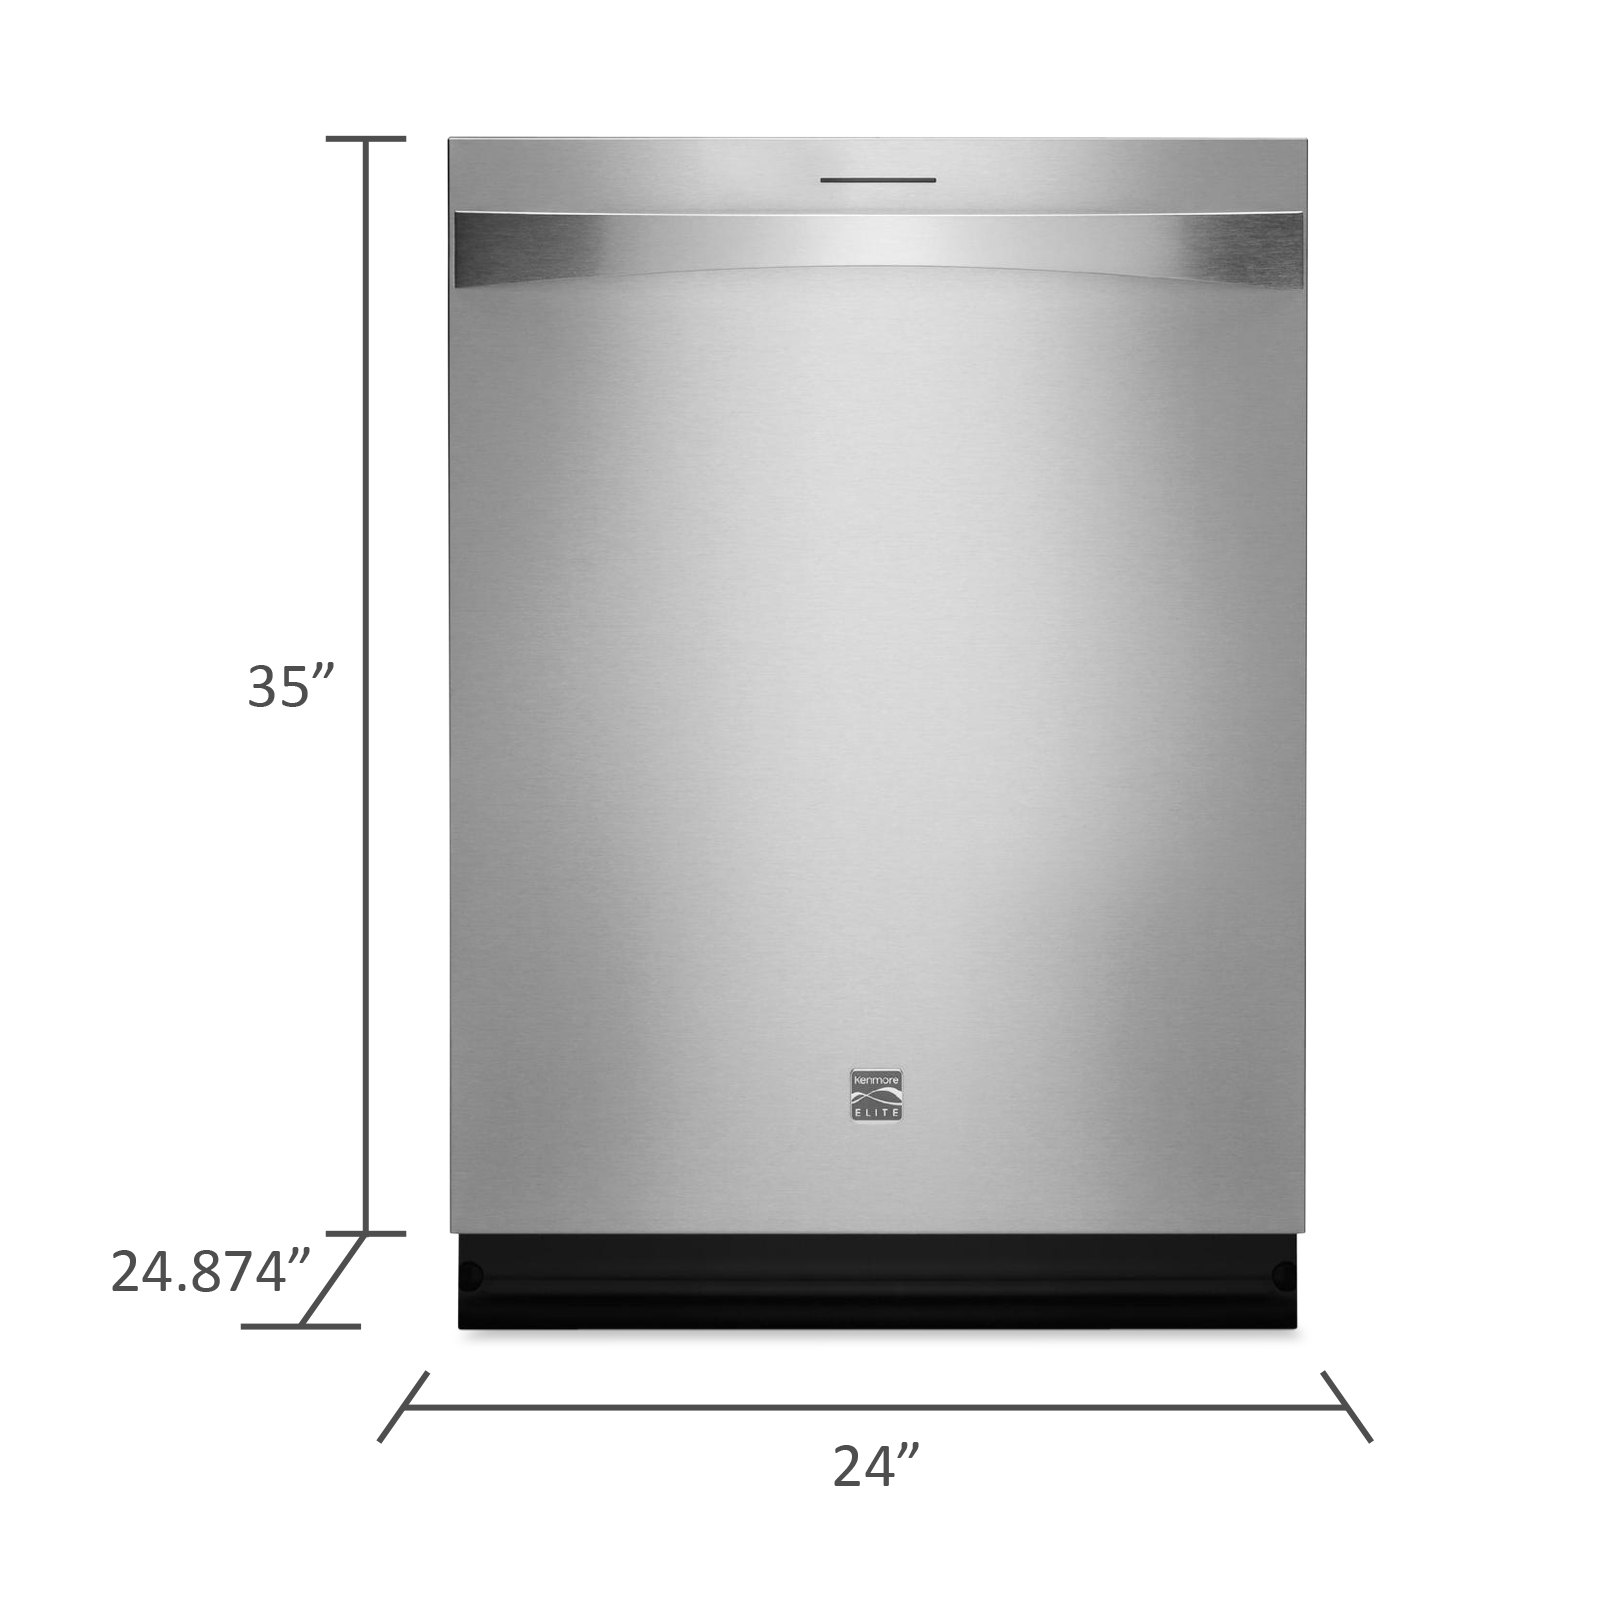 "Kenmore Elite 24"" Built-In Dishwasher - Stainless Steel"